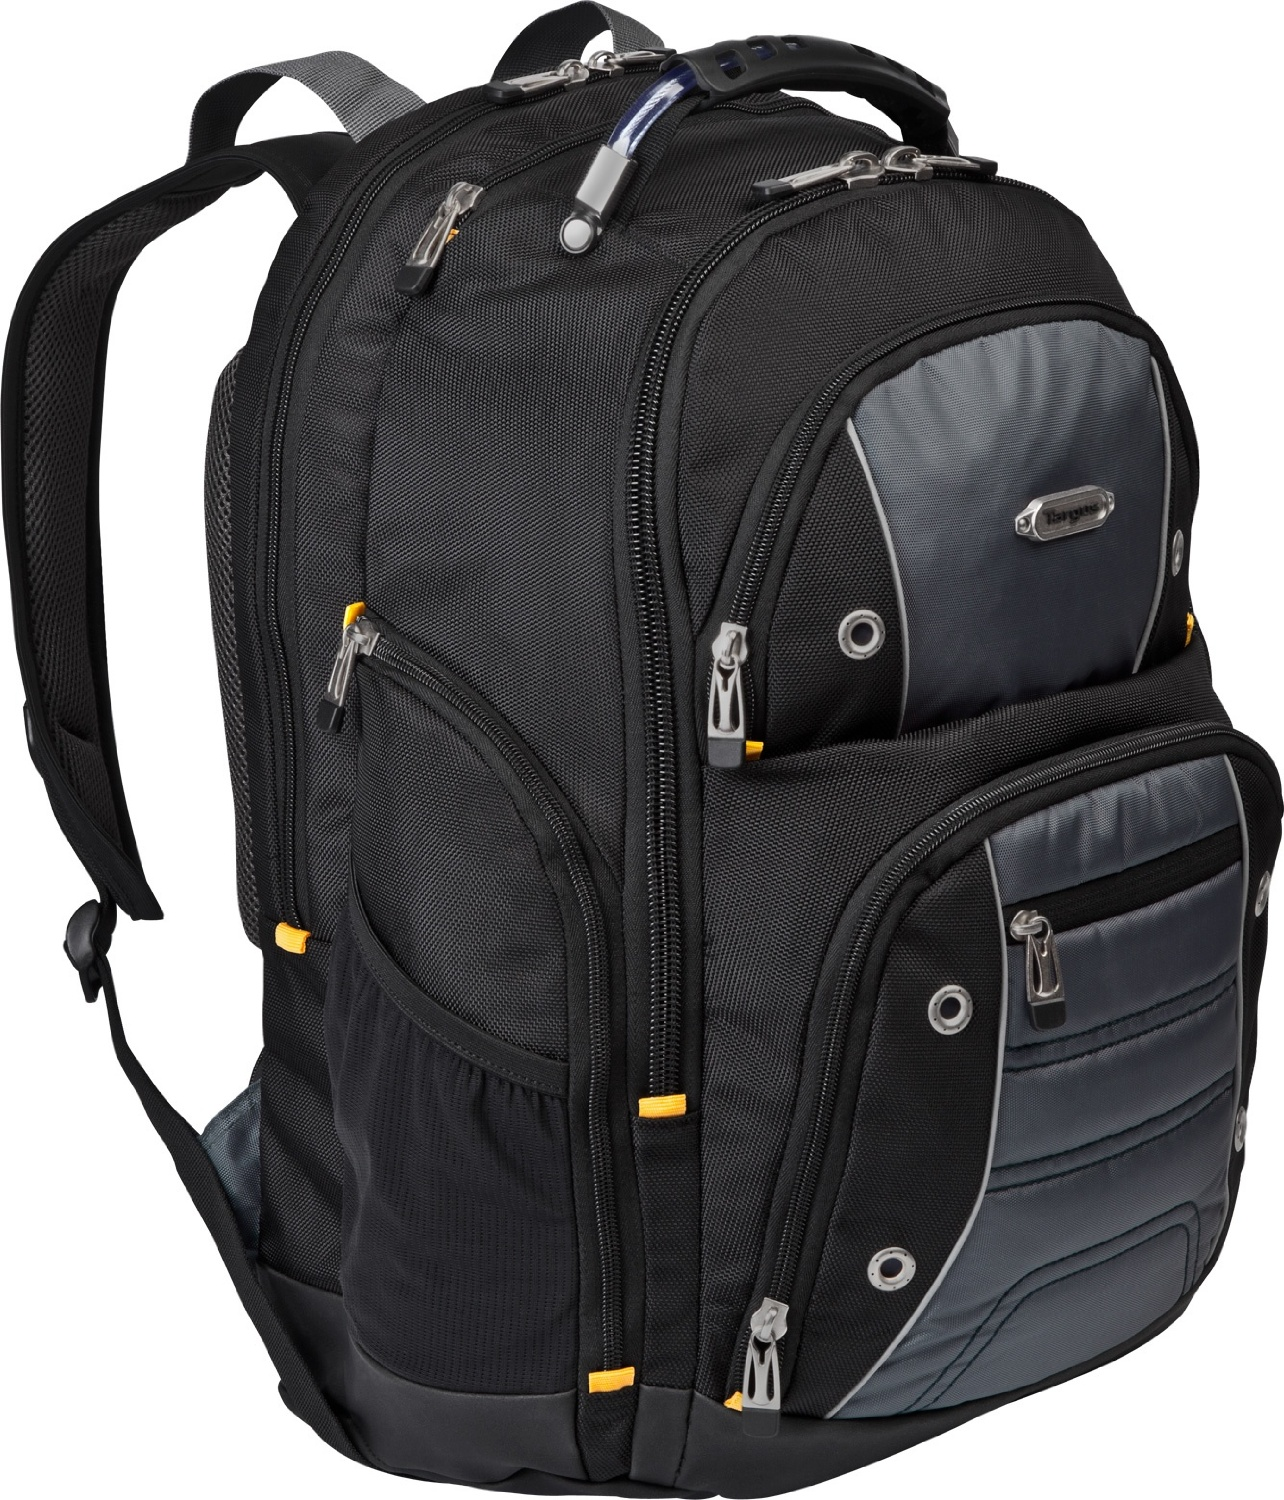 17 In Laptop Backpack ALYQnNA1